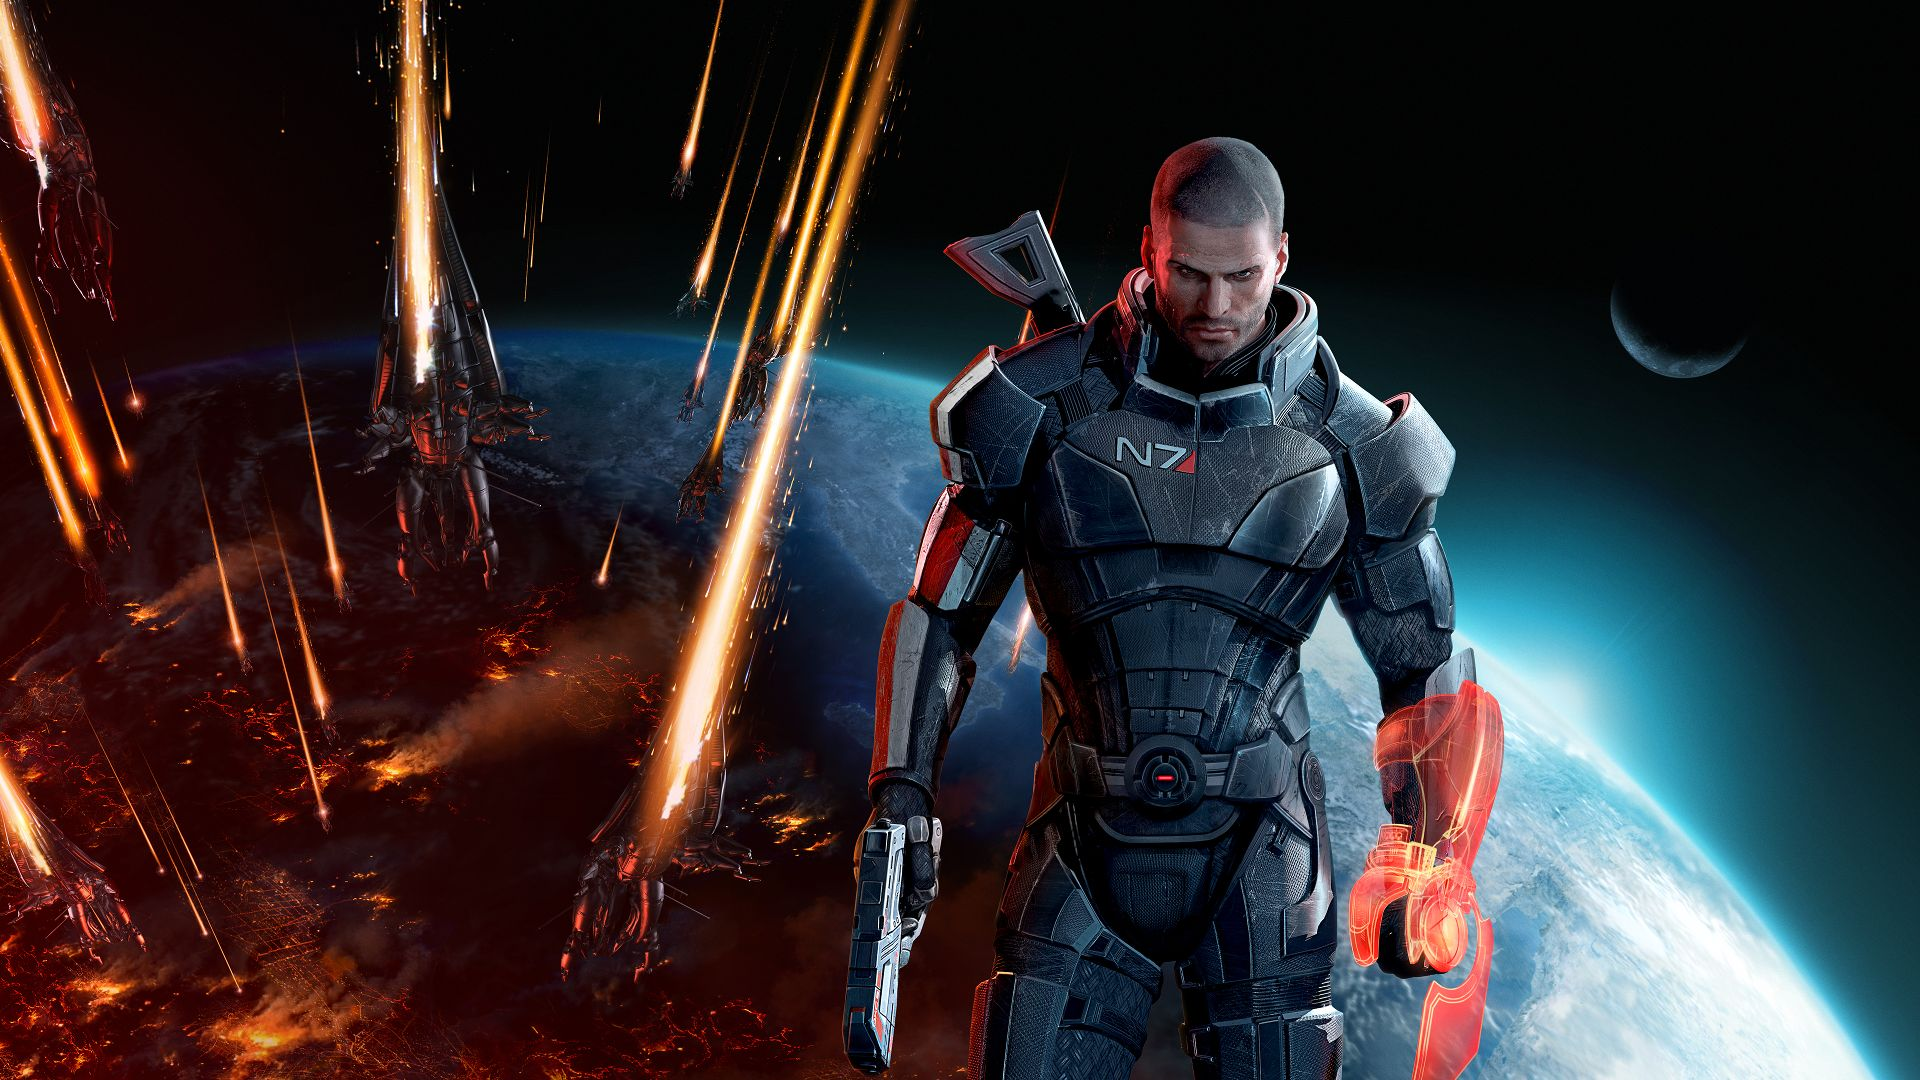 There is the slightest glimmer of hope for Mass Effect screenshot